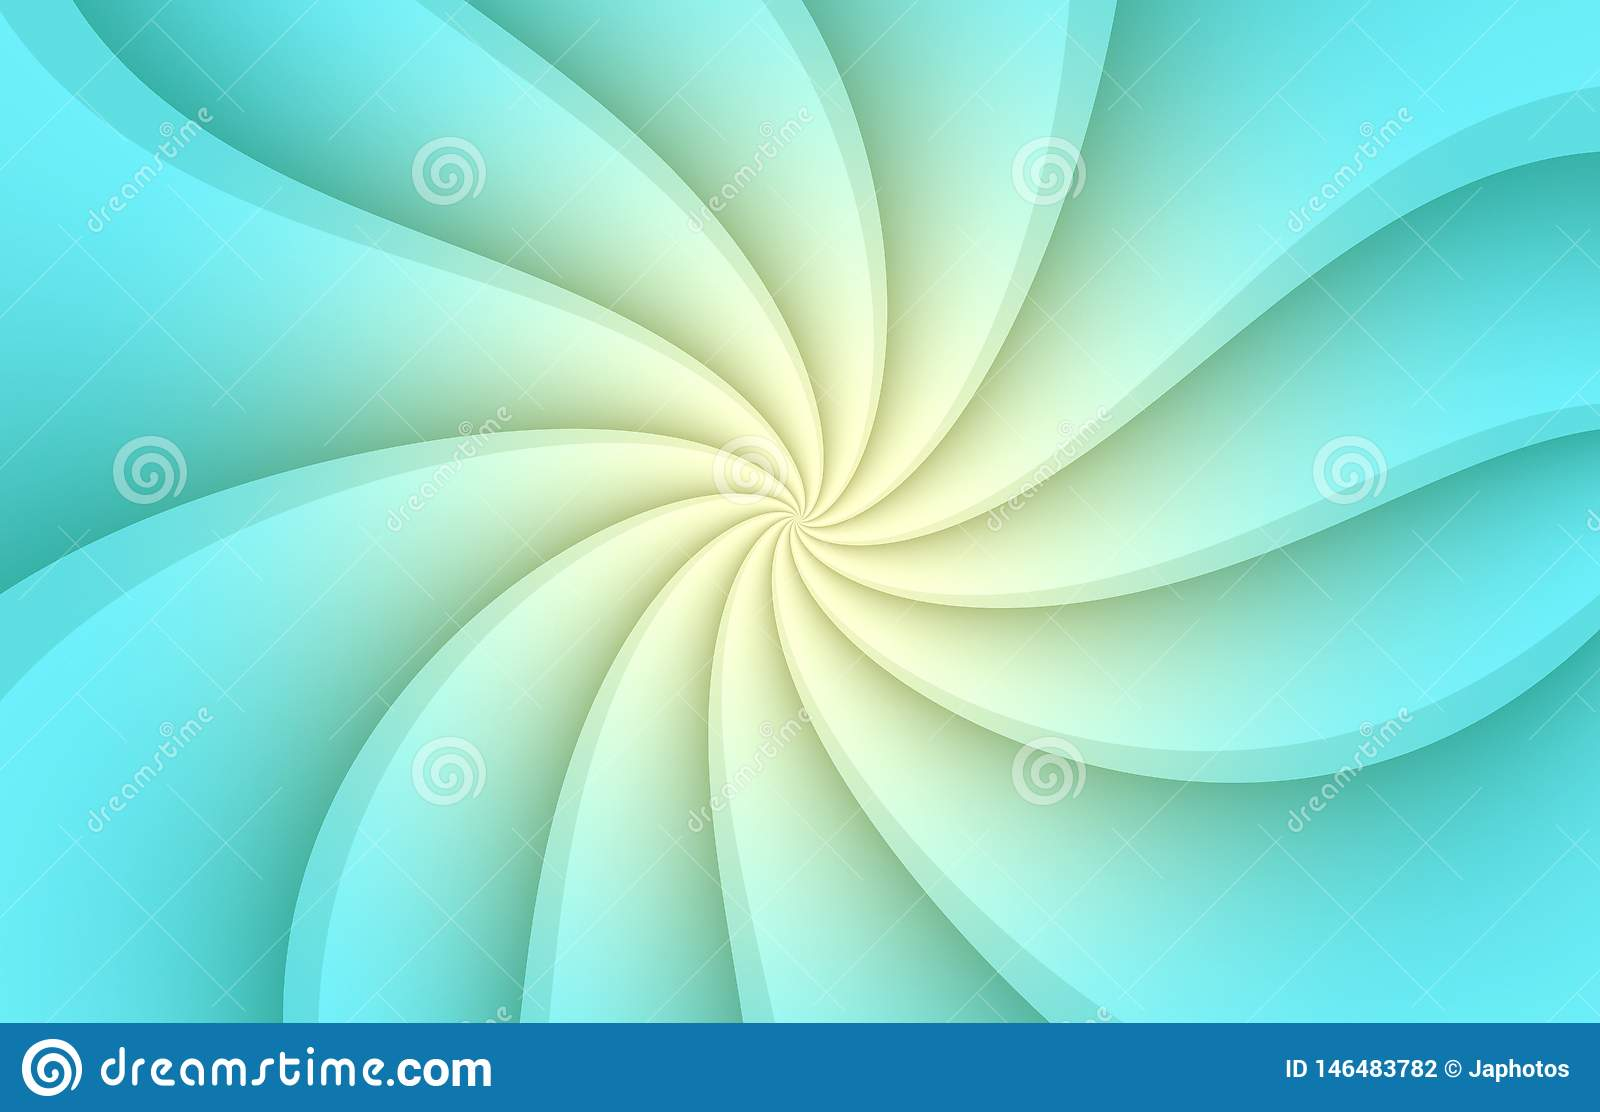 Aqua Blue And White Spinning Spiral Curves Abstract